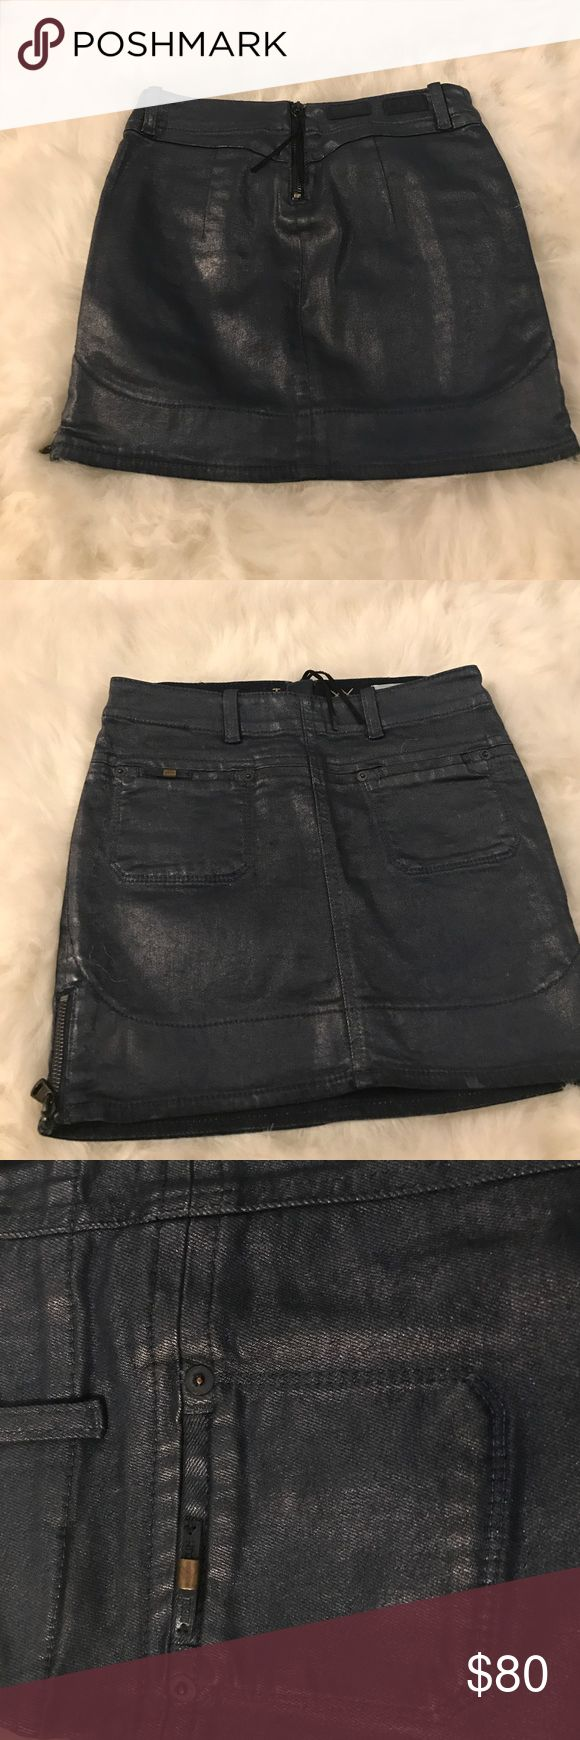 Diesel denim mini skirt Limited edition diesel mini skirt. New without tag. Only tried on once at home but feel a little short for my usual style. Bought in Italy. Two back pockets and two side zip. You can style as you want. Details show quality. Diesel Skirts Mini